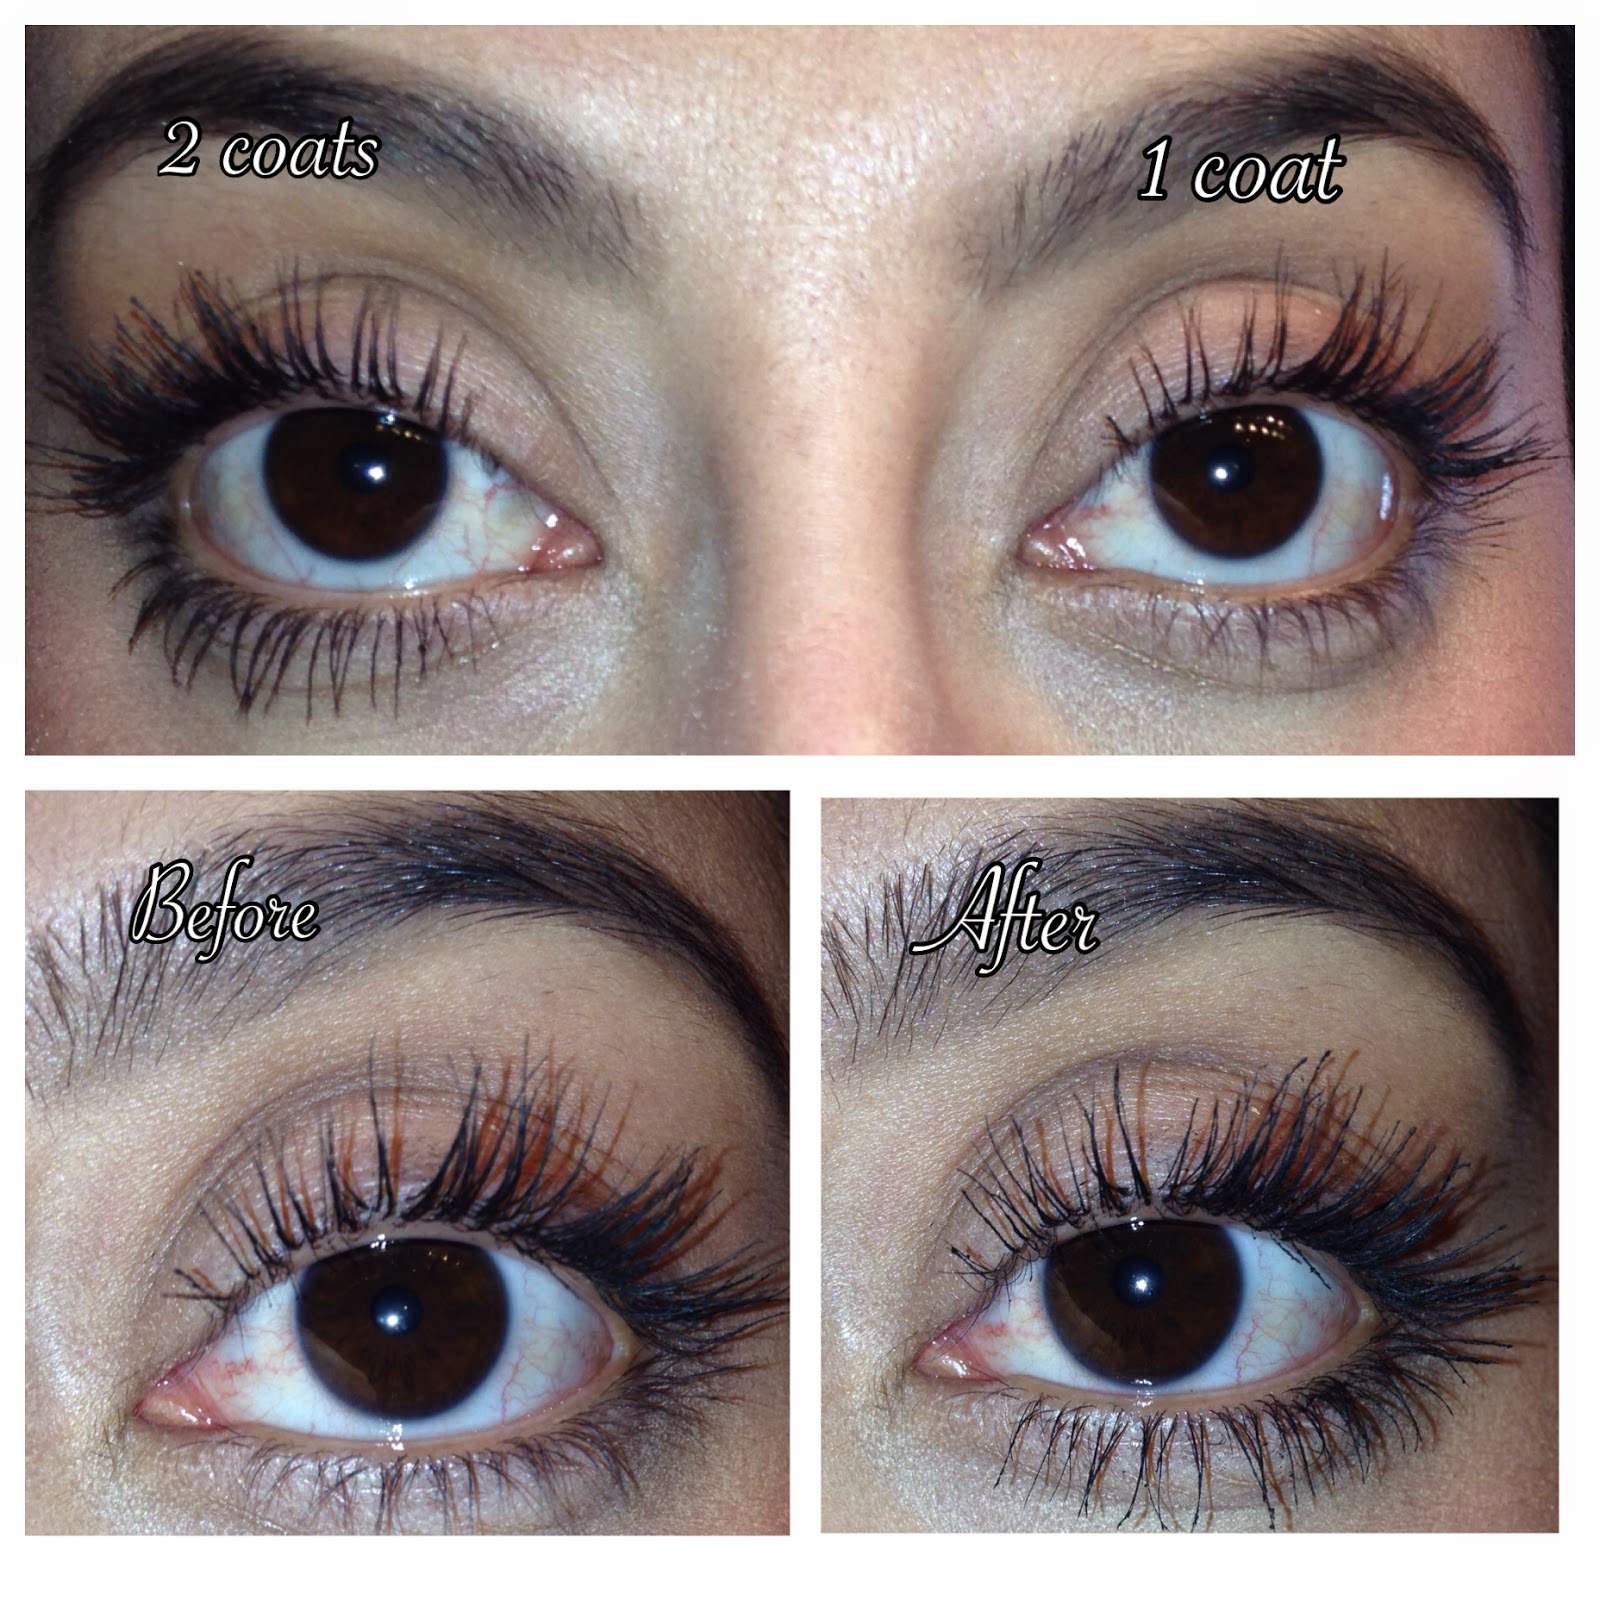 Before and after, baby powder to thicken lashes